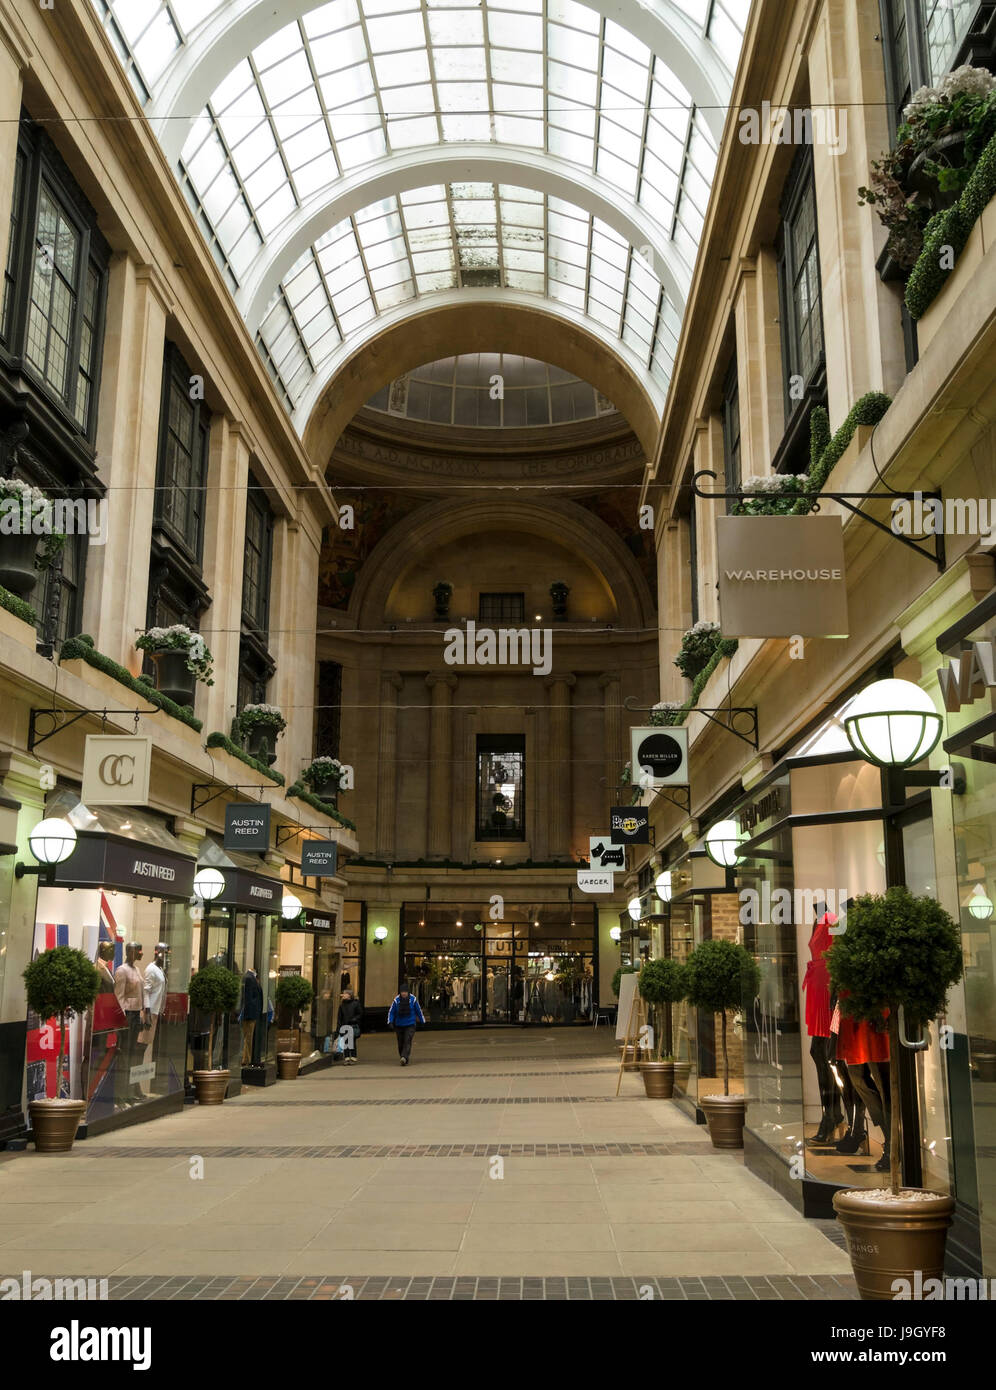 Interior of the Exchange Arcade shopping arcade, Nottingham, England, UK - Stock Image